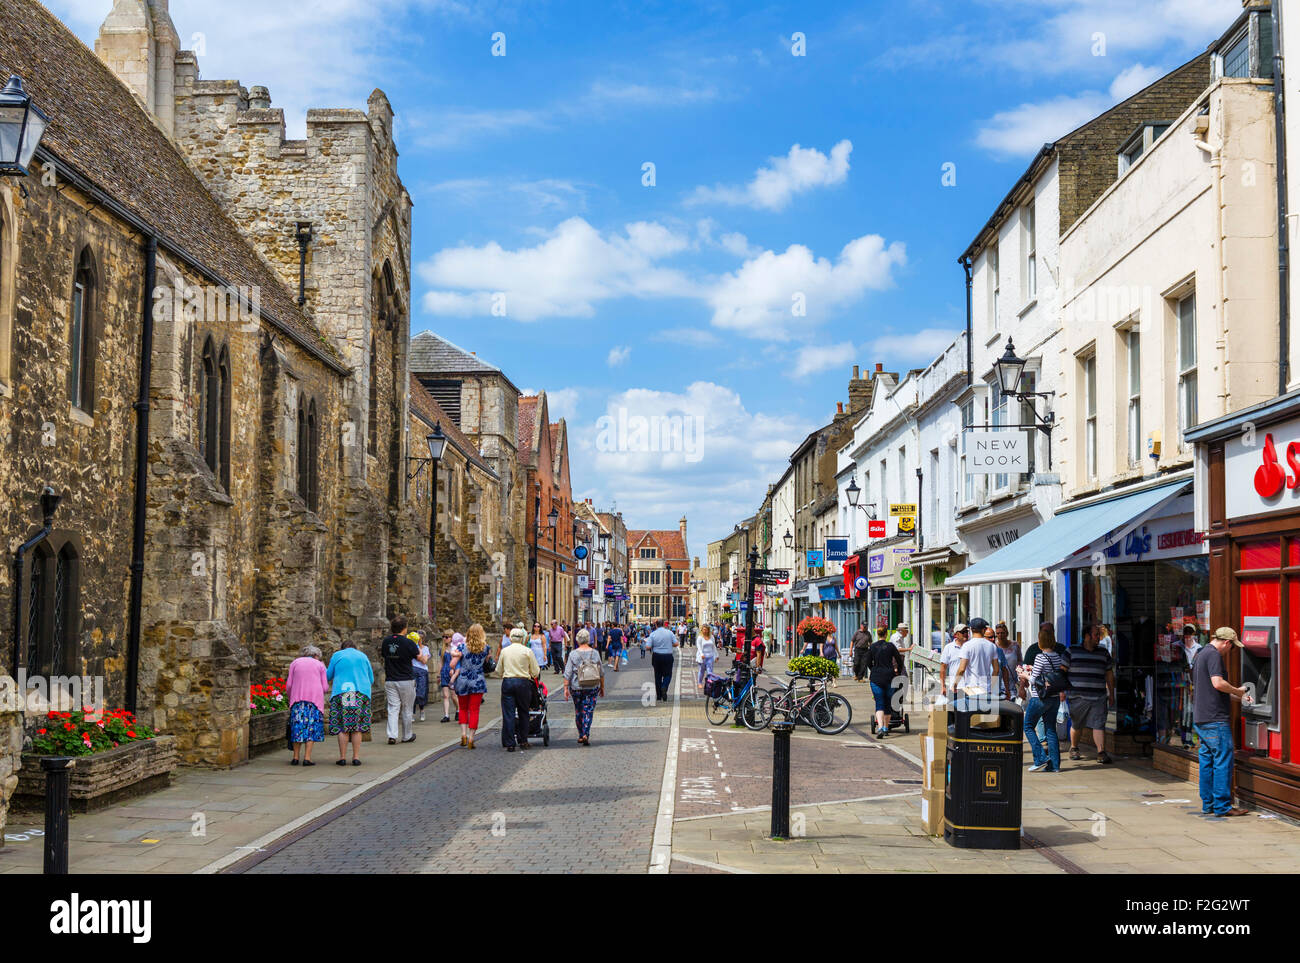 The High Street, Ely, Cambridgeshire, England, UK - Stock Image